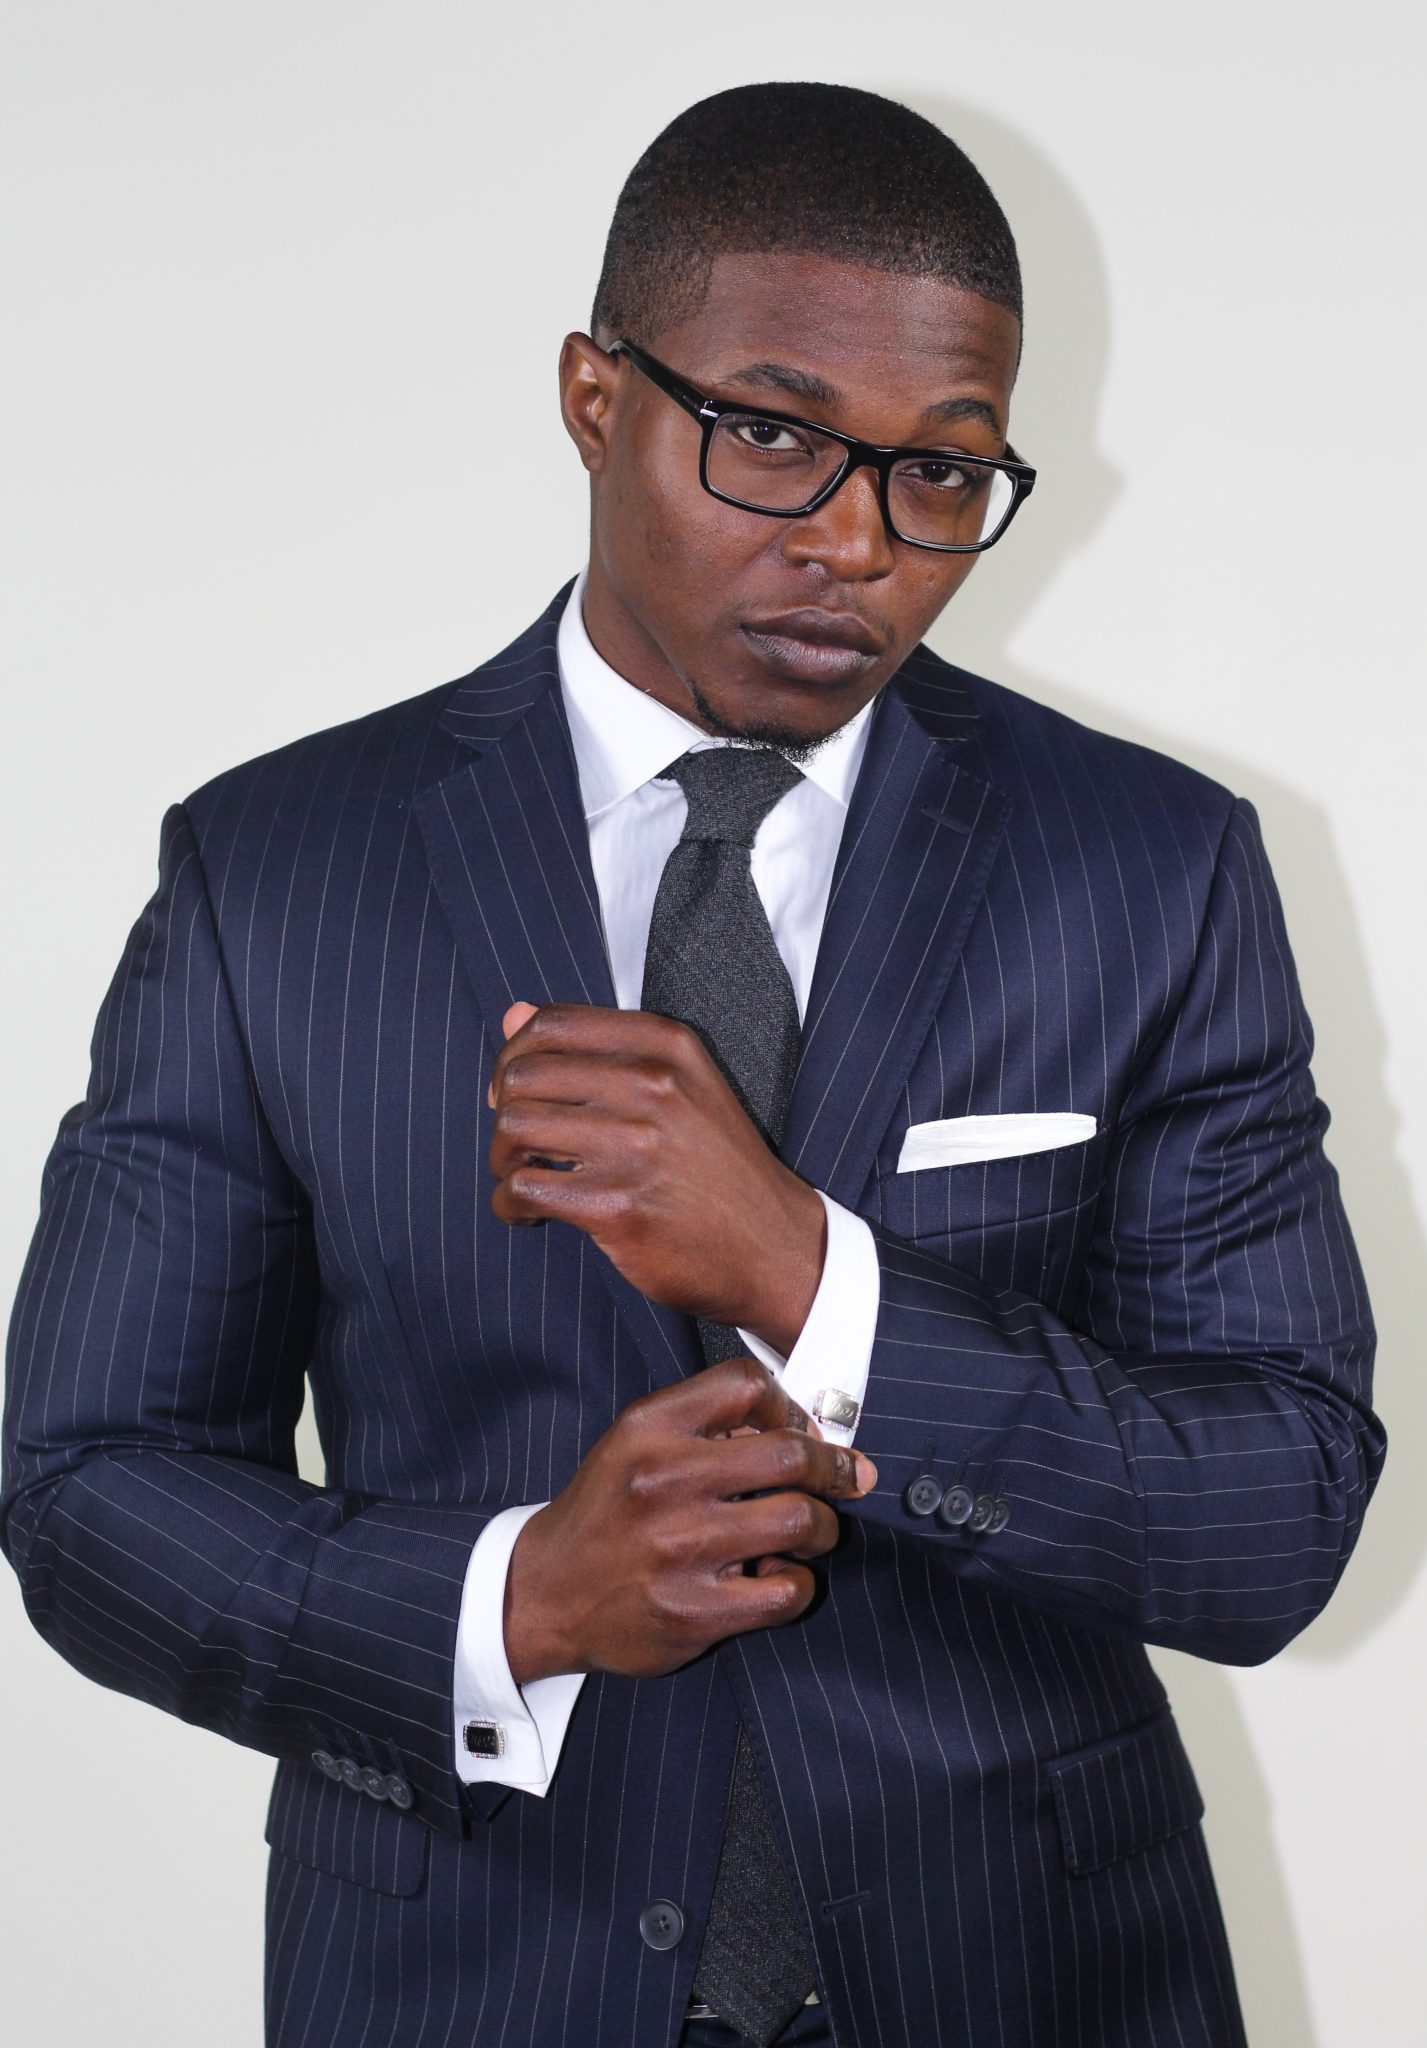 Strictly Business: The Navy Pinstripe Suit | The Dapper Advisor